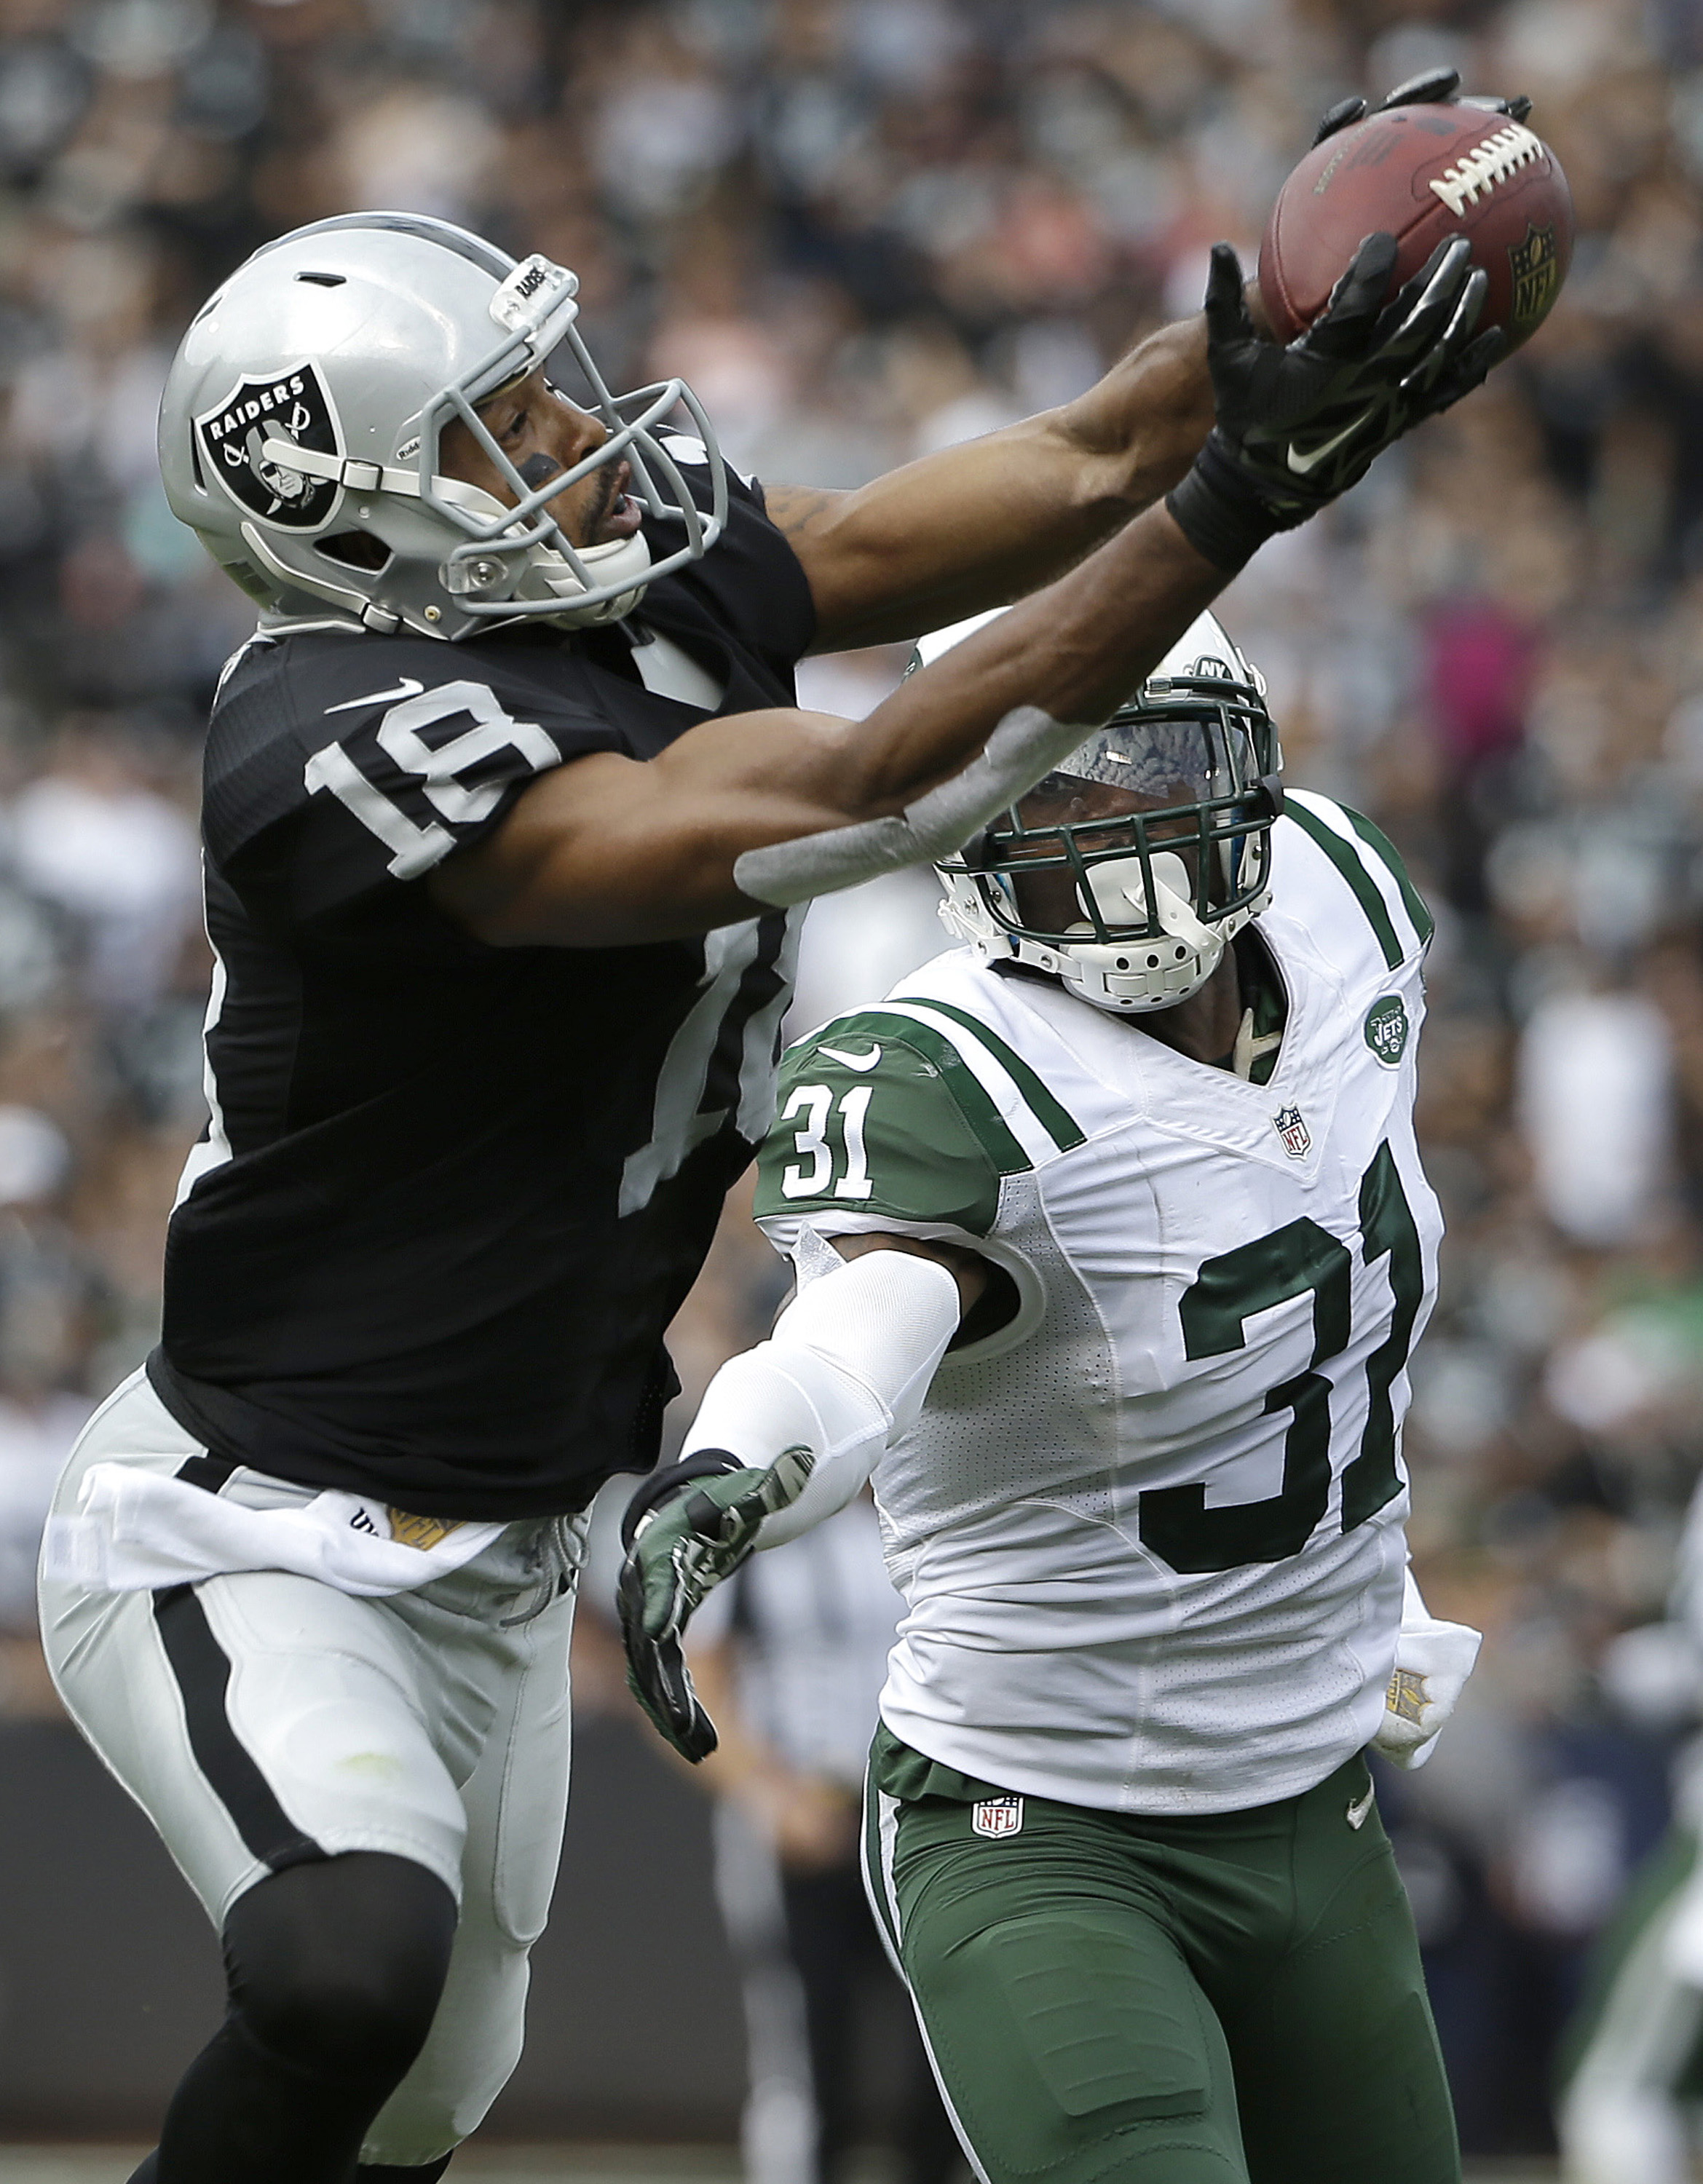 Oakland Raiders wide receiver Andre Holmes (18) catches a touchdown pass over New York Jets cornerback Antonio Cromartie (31) during the first half of an NFL football game in Oakland, Calif., Sunday, Nov. 1, 2015. (AP Photo/Marcio Jose Sanchez)